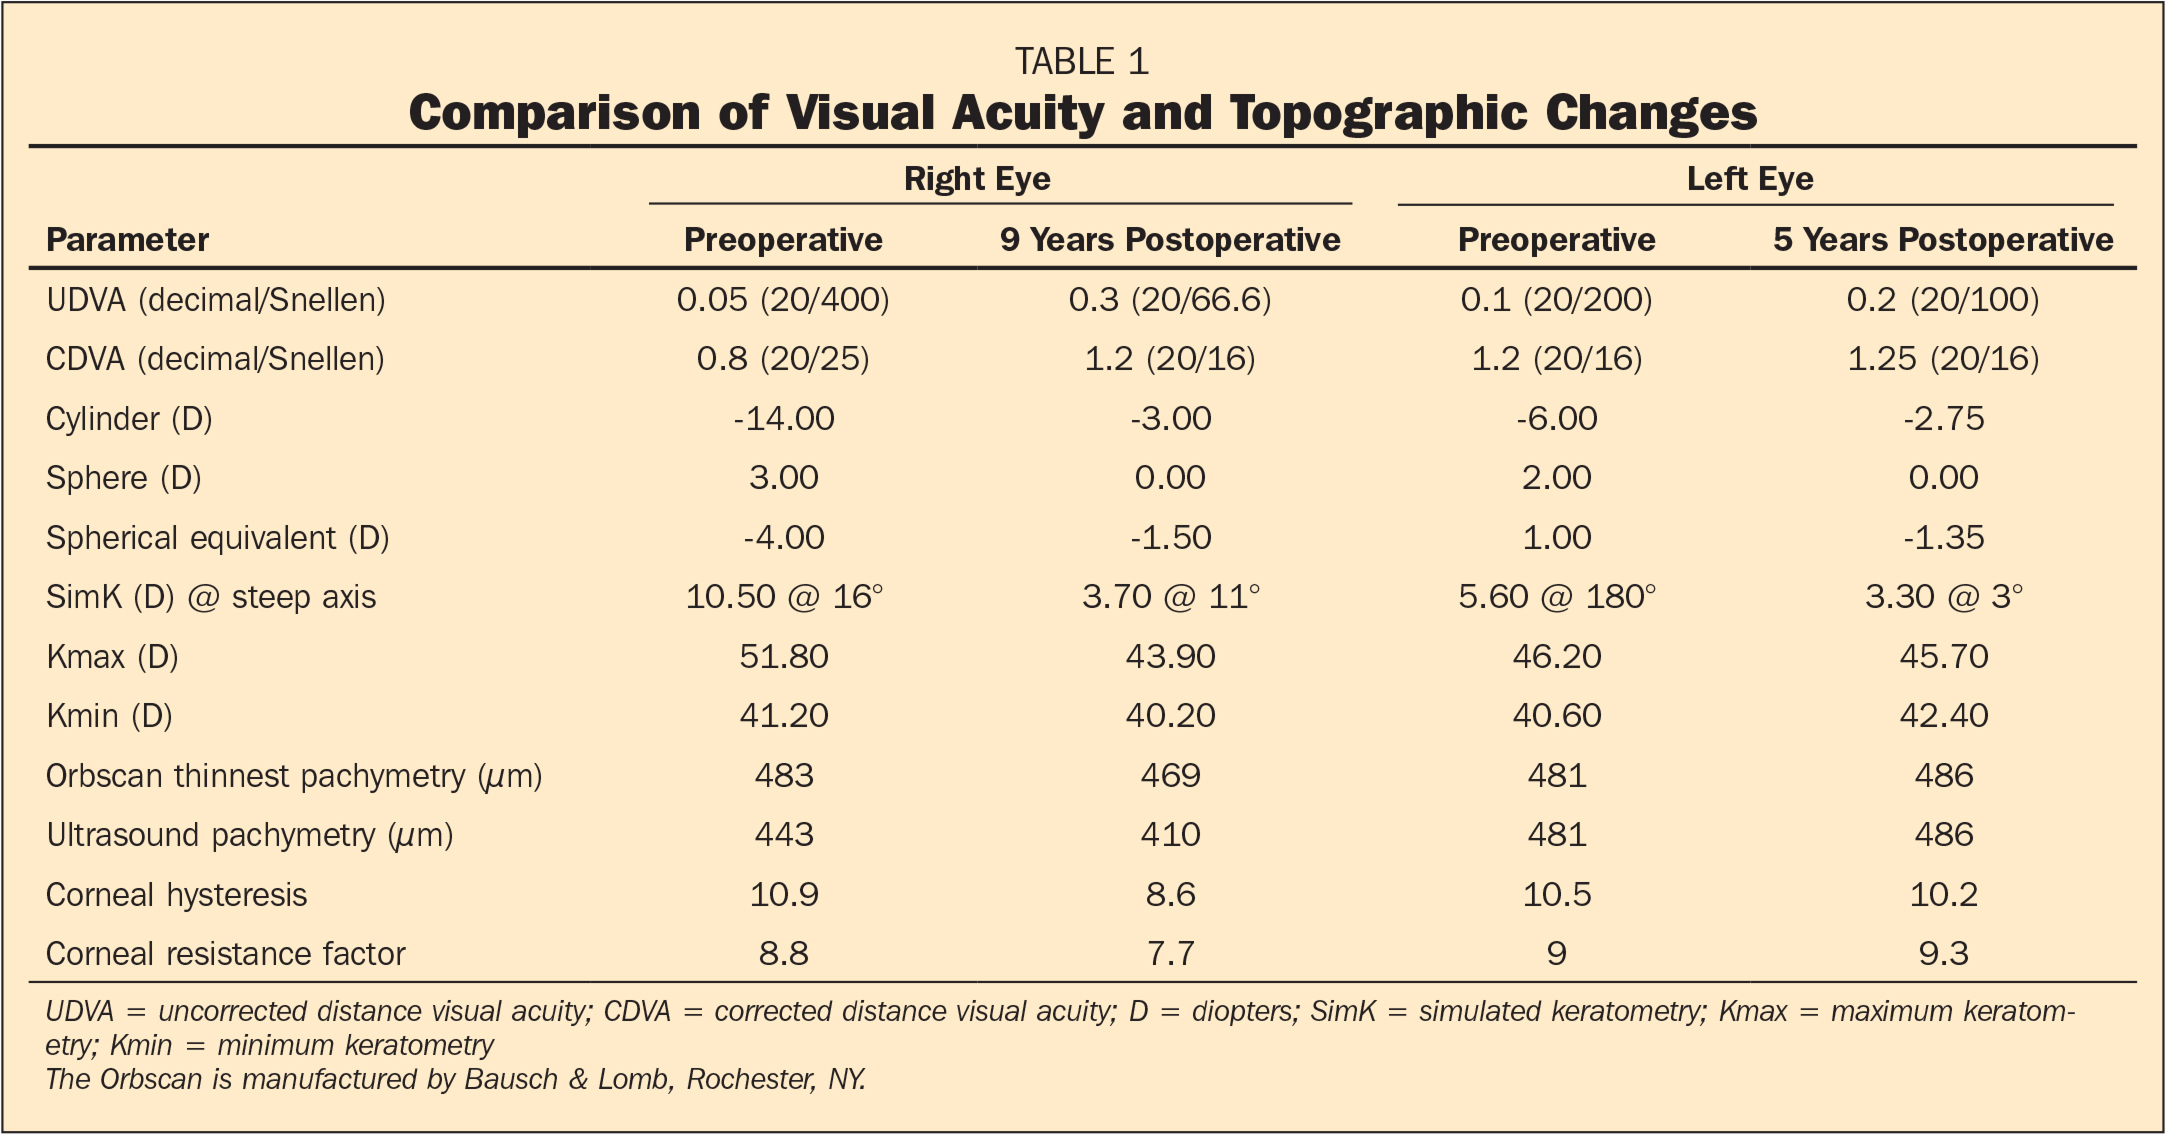 Comparison of Visual Acuity and Topographic Changes